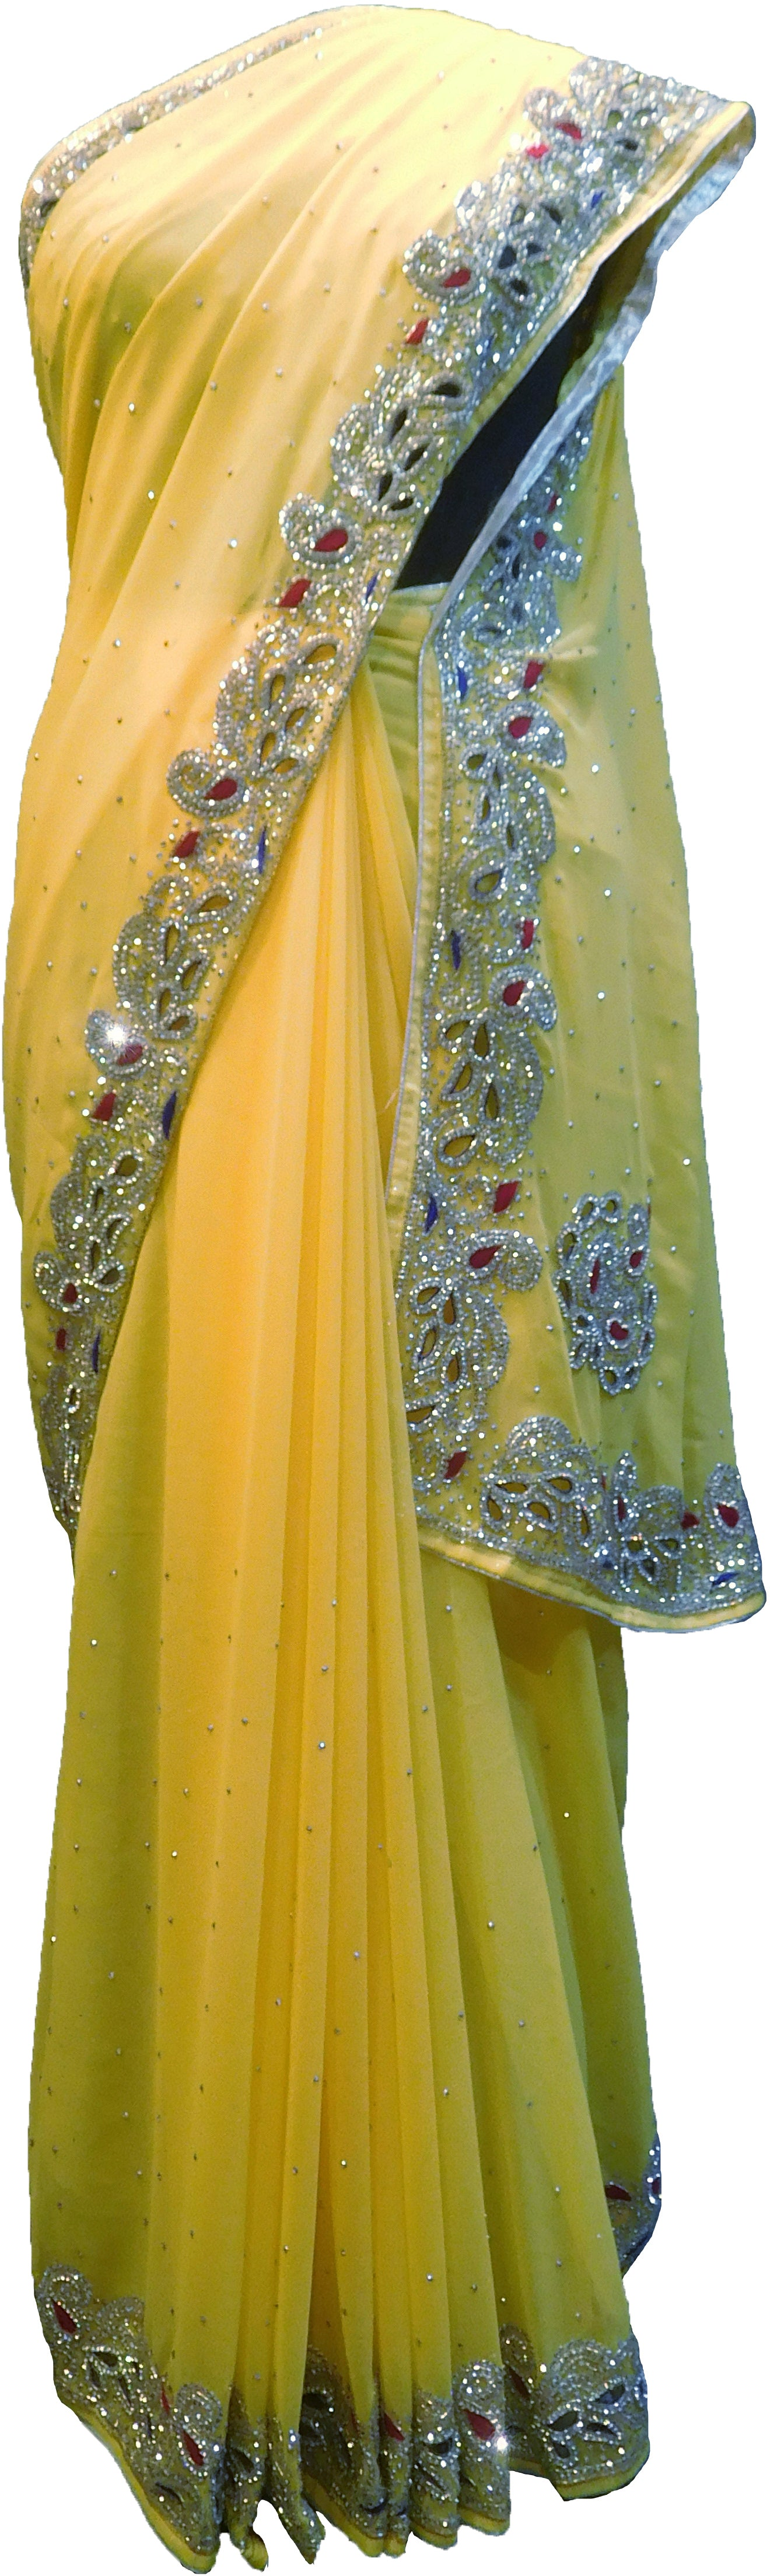 SMSAREE Yellow Designer Wedding Partywear Georgette Stone Thread & Cutdana Hand Embroidery Work Bridal Saree Sari With Blouse Piece F263